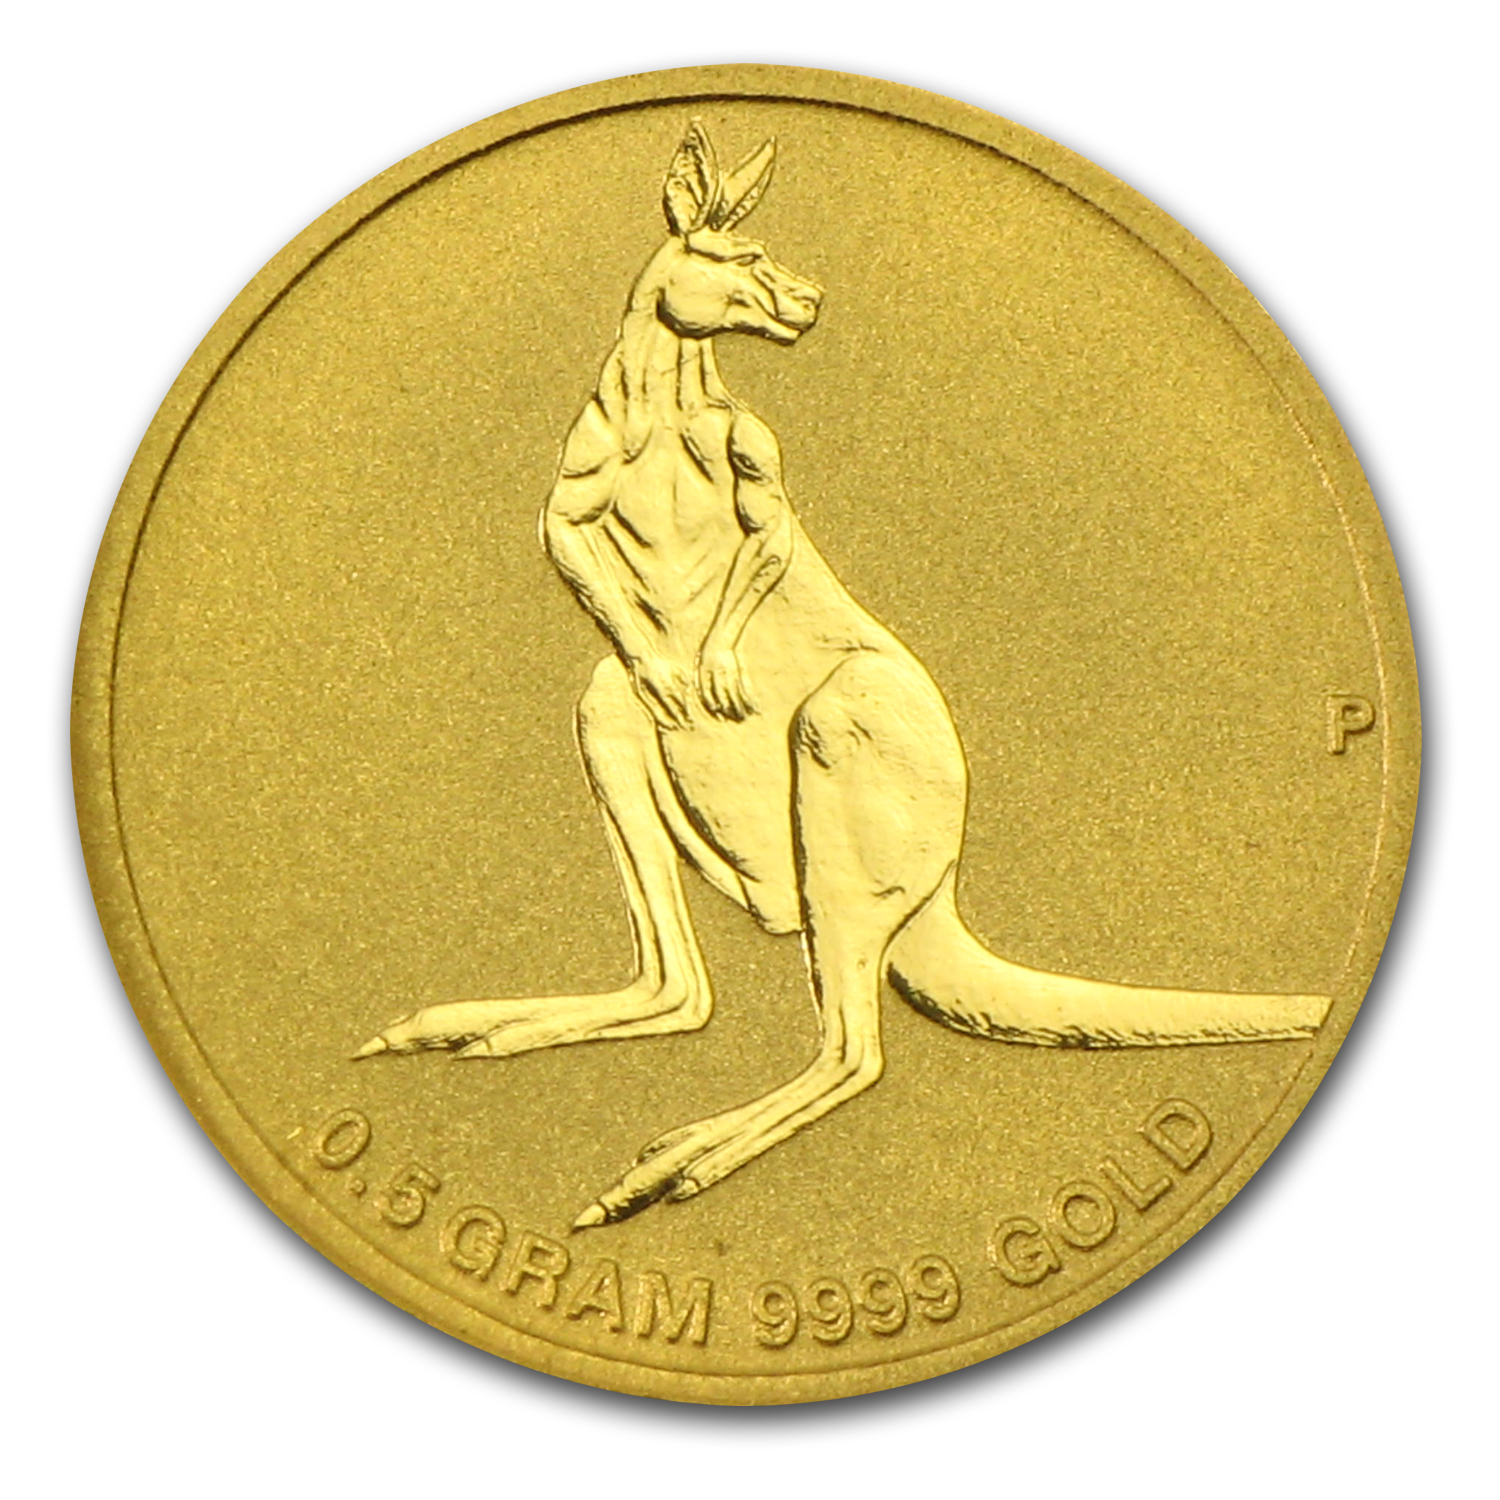 2014 Australia 1/2 Gram Gold Kangaroo Mini Roo BU (Assay Card)